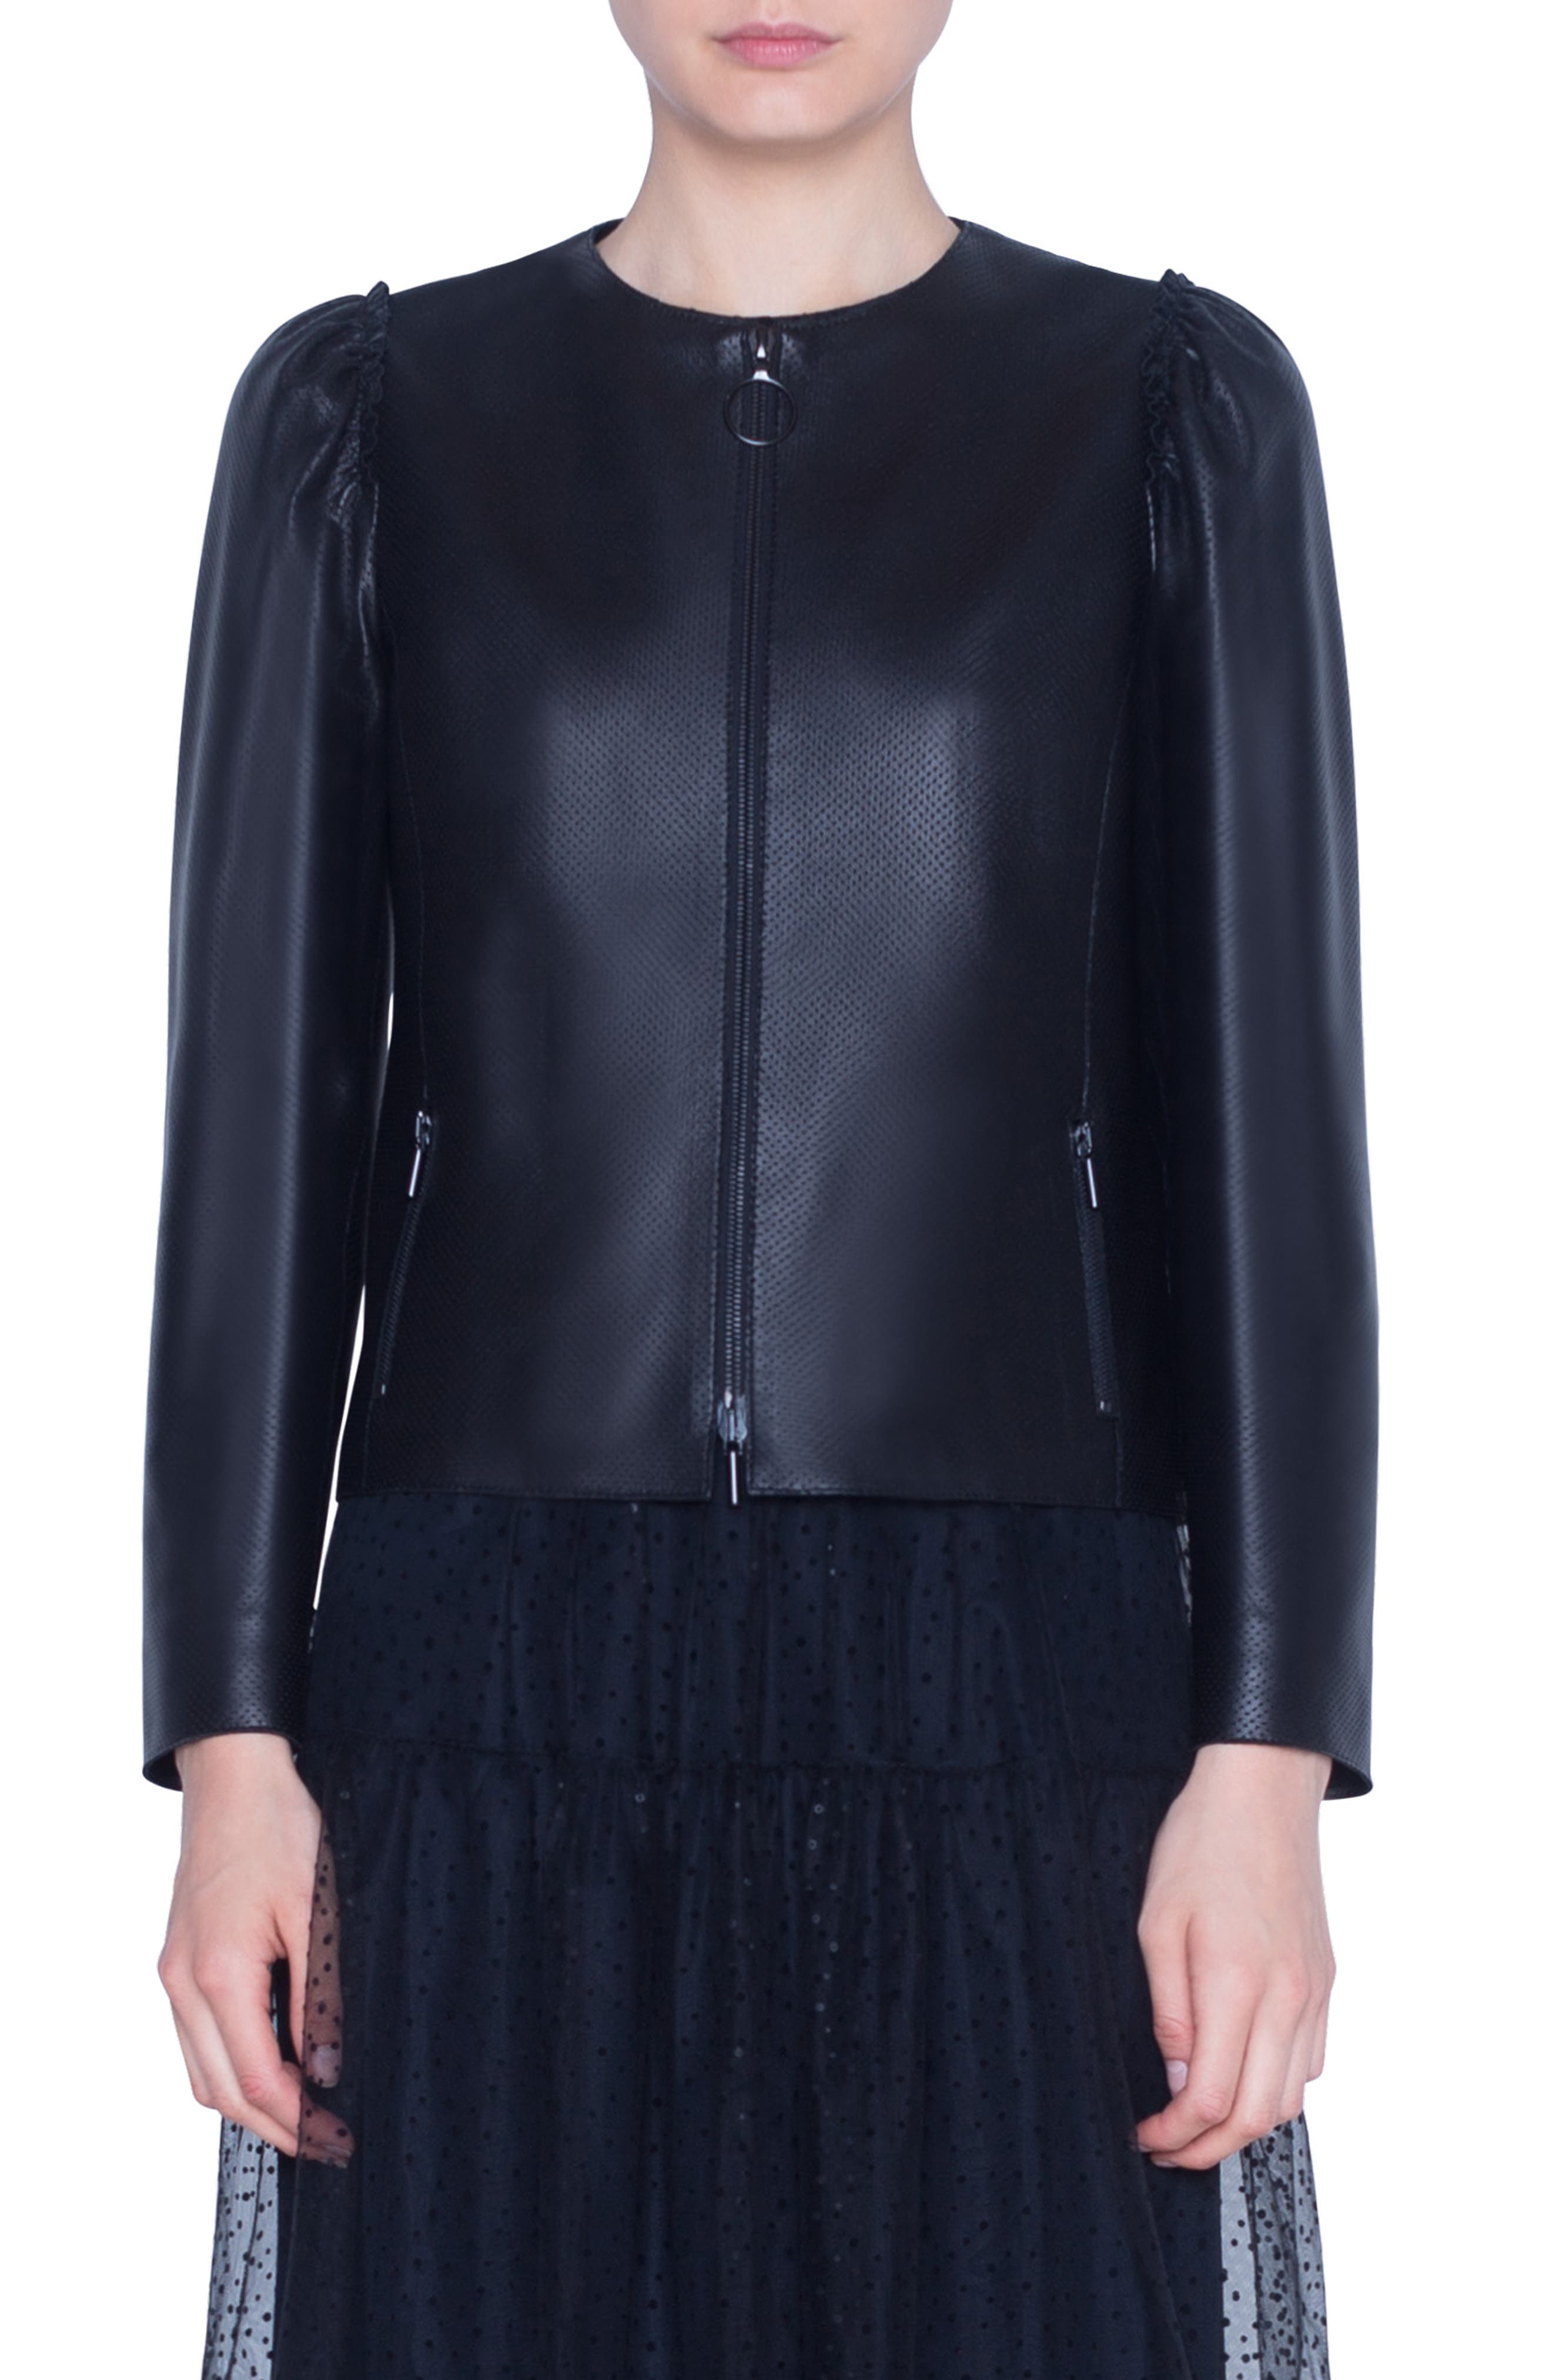 Ruffly, puffed shoulders soften the sleek look of a collarless jacket crafted from perforated nappa leather with a signature ring-pull zip. Style Name: Akris Punto Perforated Leather Jacket. Style Number: 5873198. Available in stores.